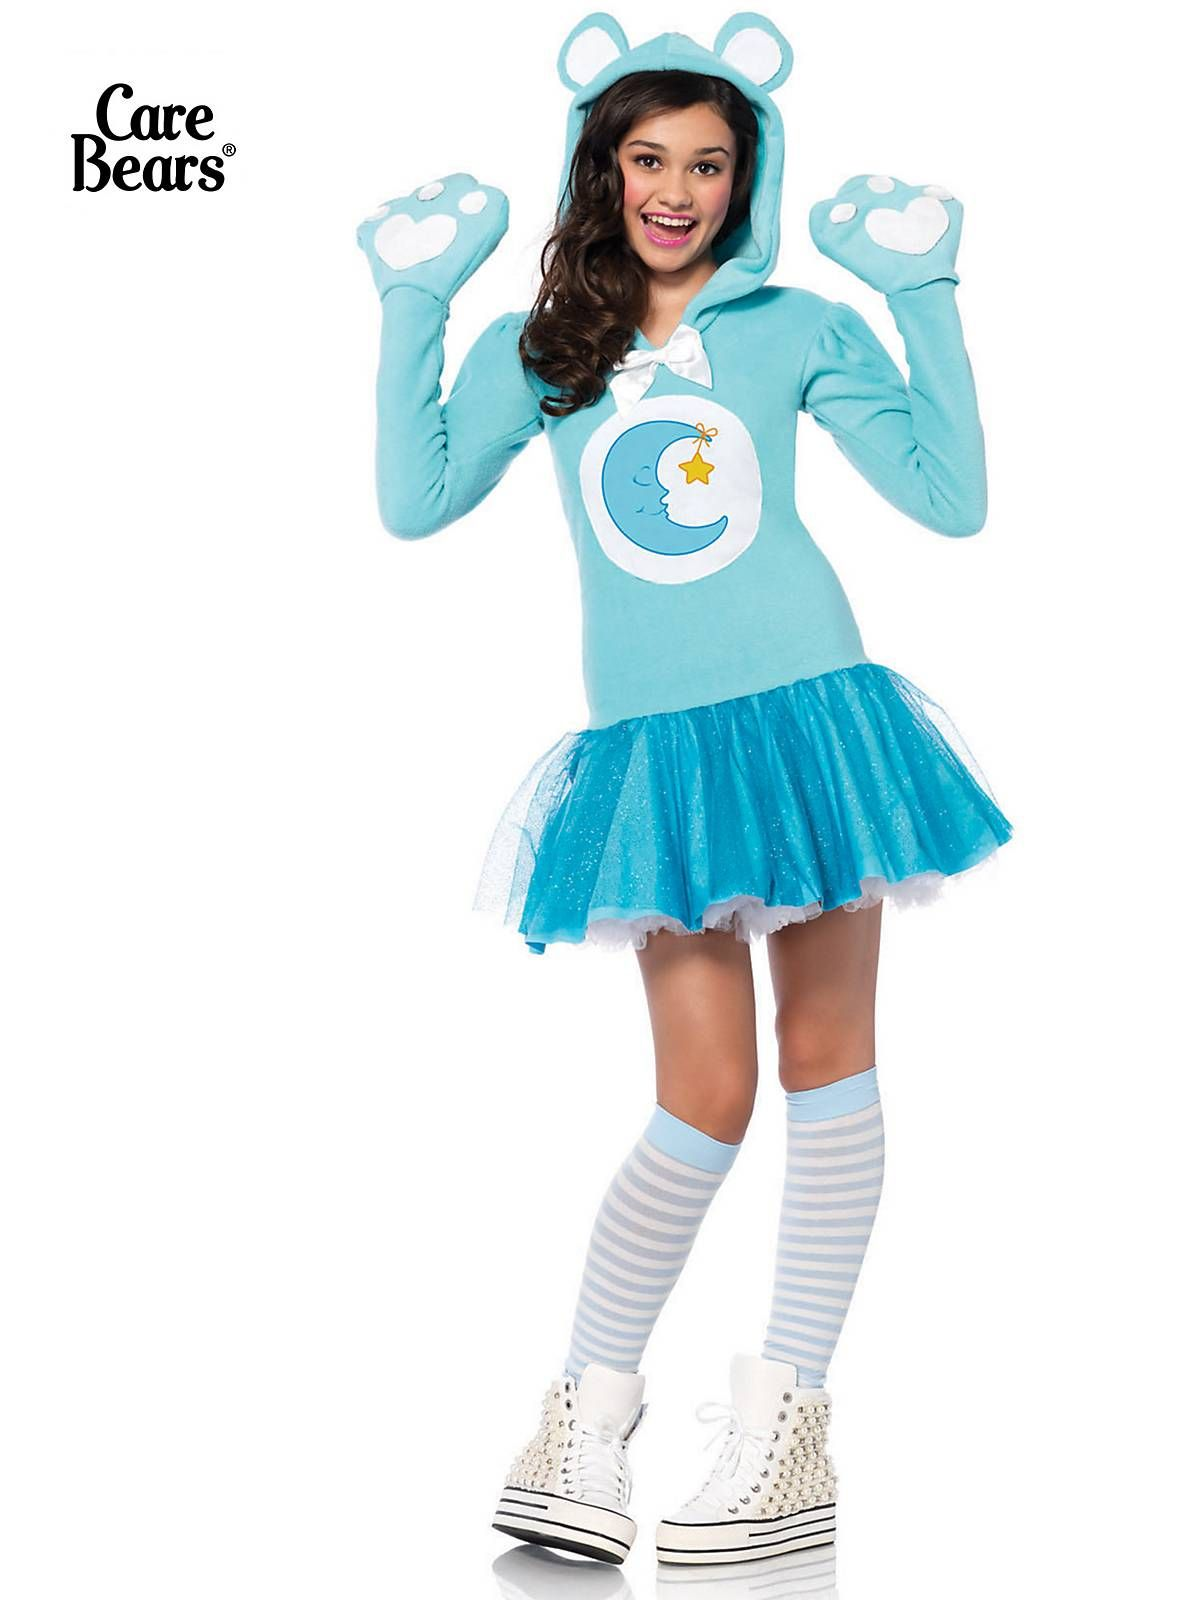 Care Bears Cheer Bear Deluxe Childrens Costume -8999